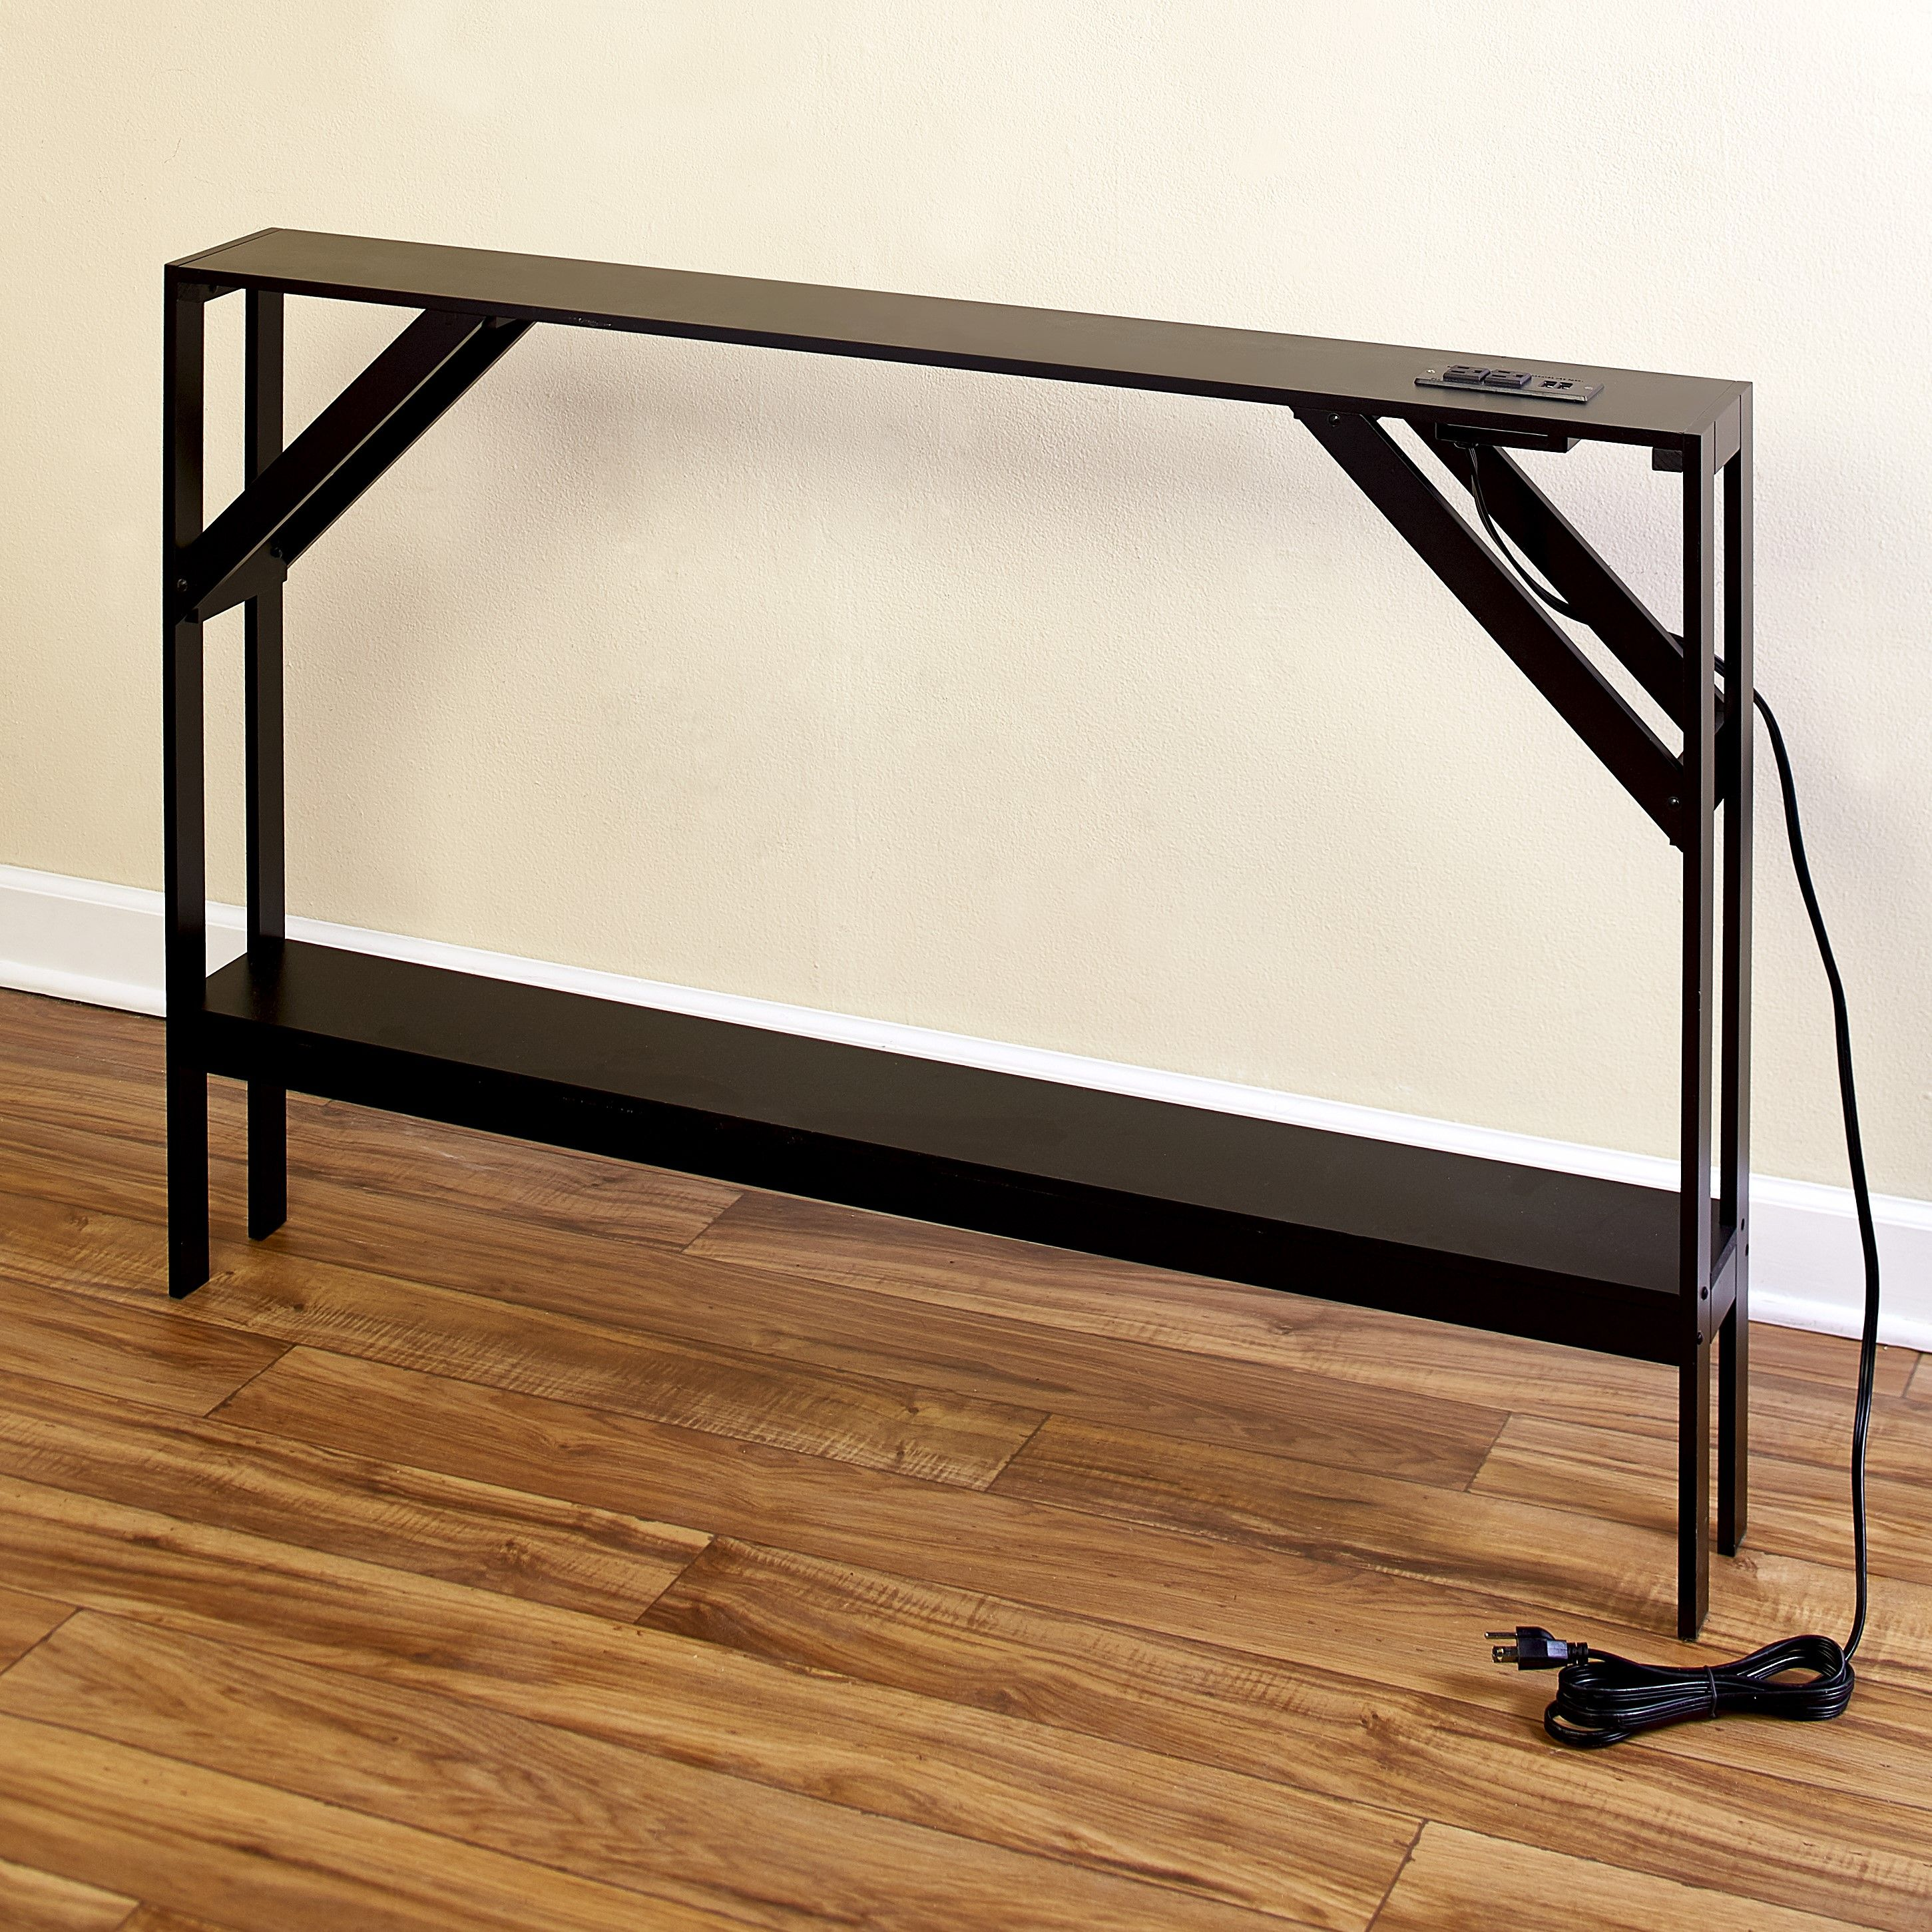 Skinny Sofa Table With Outlet For Phones And Laptops Modern Accent Table Walmart Com In 2020 Modern Accent Tables Behind Sofa Table Sofa Table